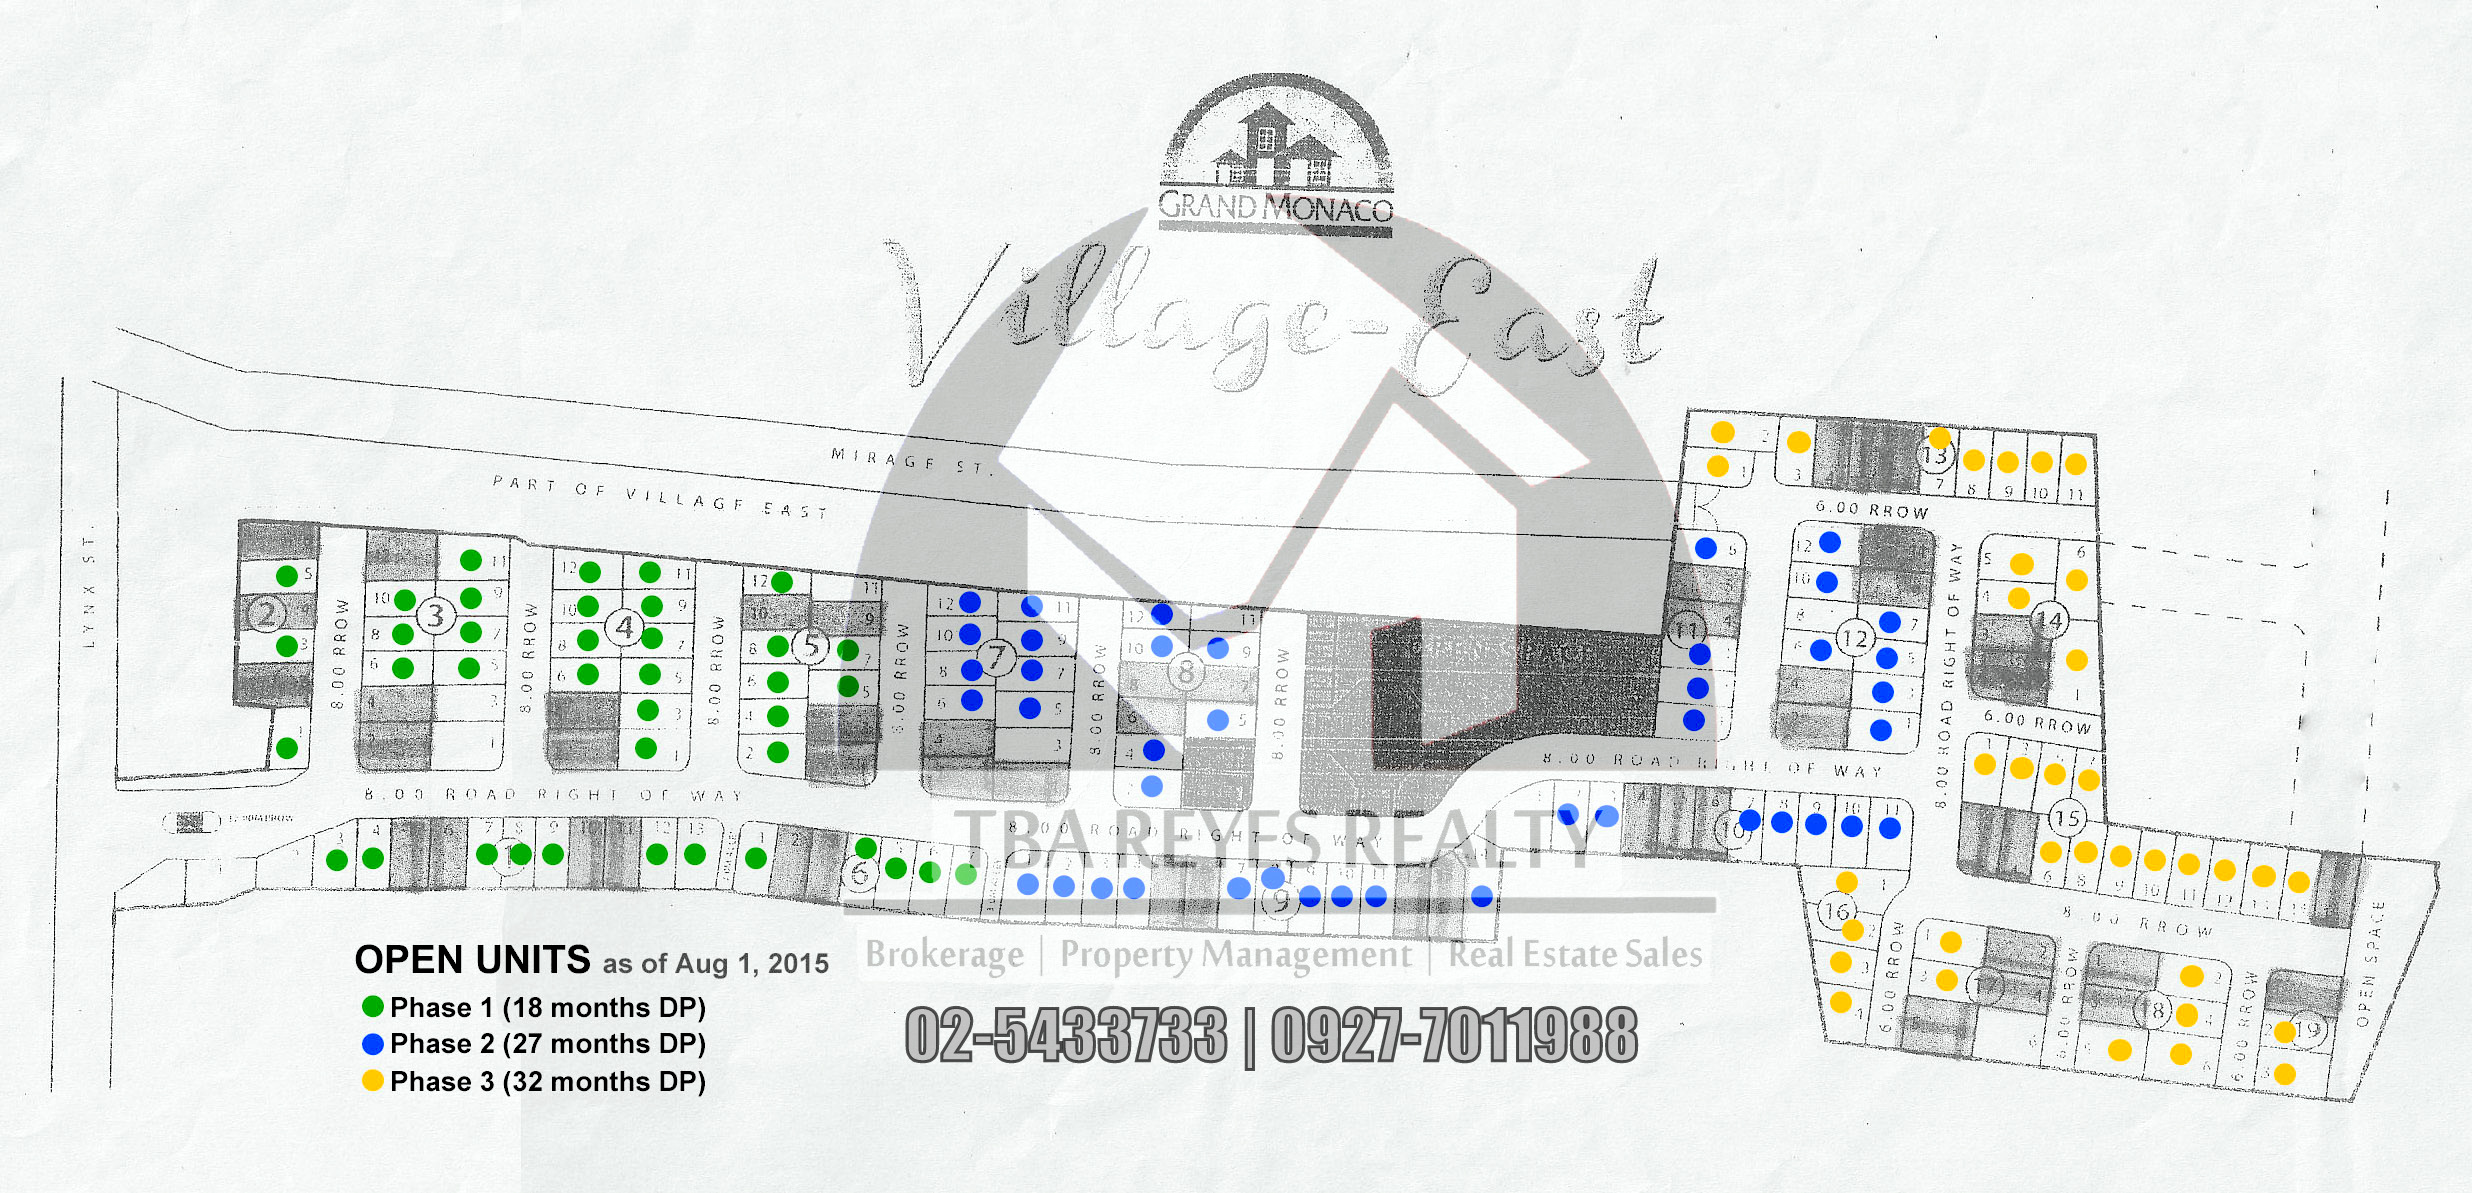 GRAND MONACO IN CAINTA - VILLAGE-EAST